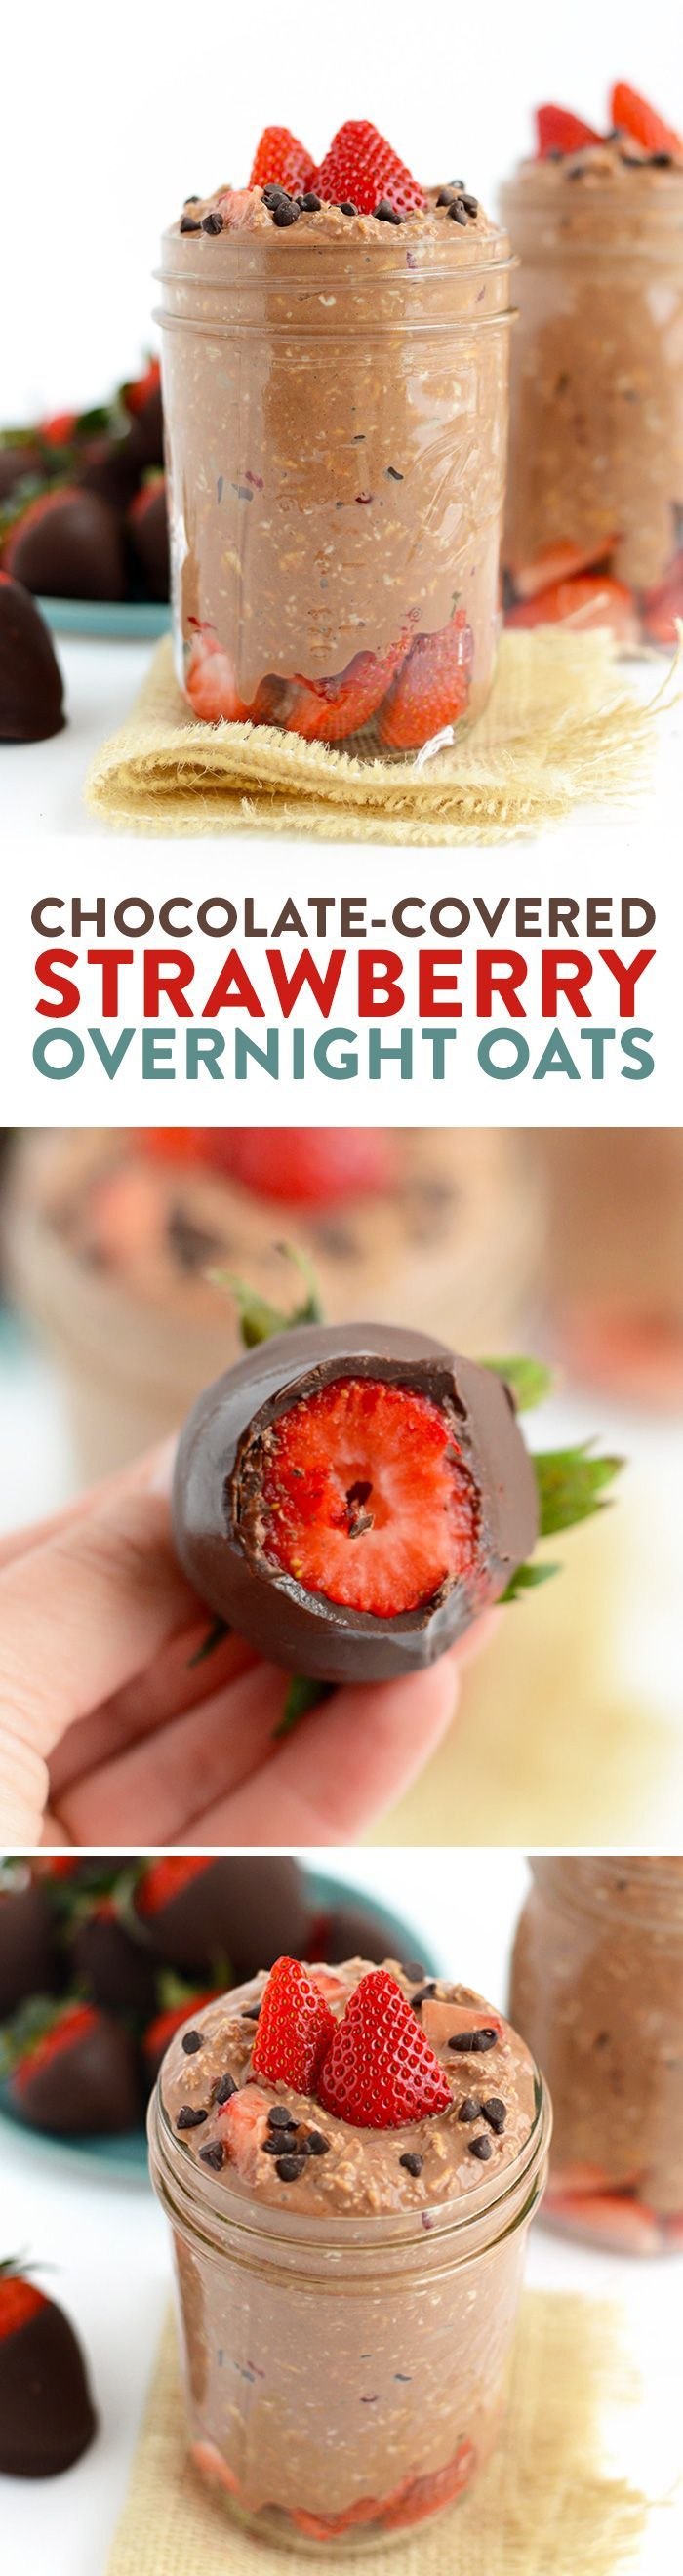 Chocolate covered strawberries for breakfast? YES PLEASE! Make this chocolate covered strawberry overnight oatmeal recipe and get 15 grams protein and a full serving of whole grains for breakfast! It's gluten-free and made with yummy chocolate protein powder, Greek yogurt, and rolled oats.